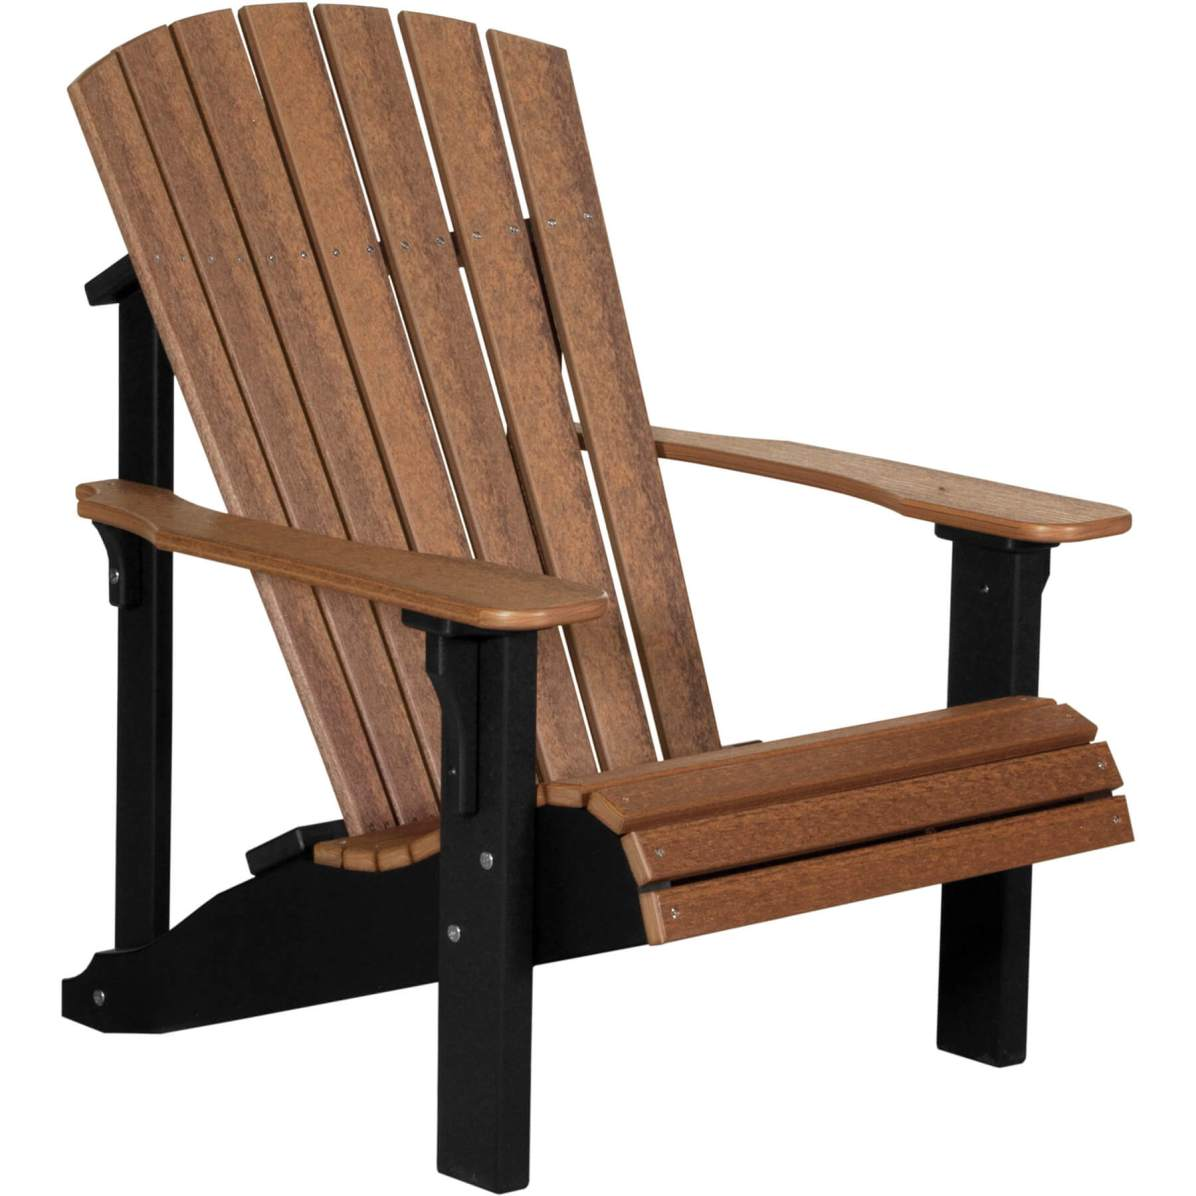 PDACAMB Poly Deluxe Adirondack Chair (Antique Mahogany & Black)